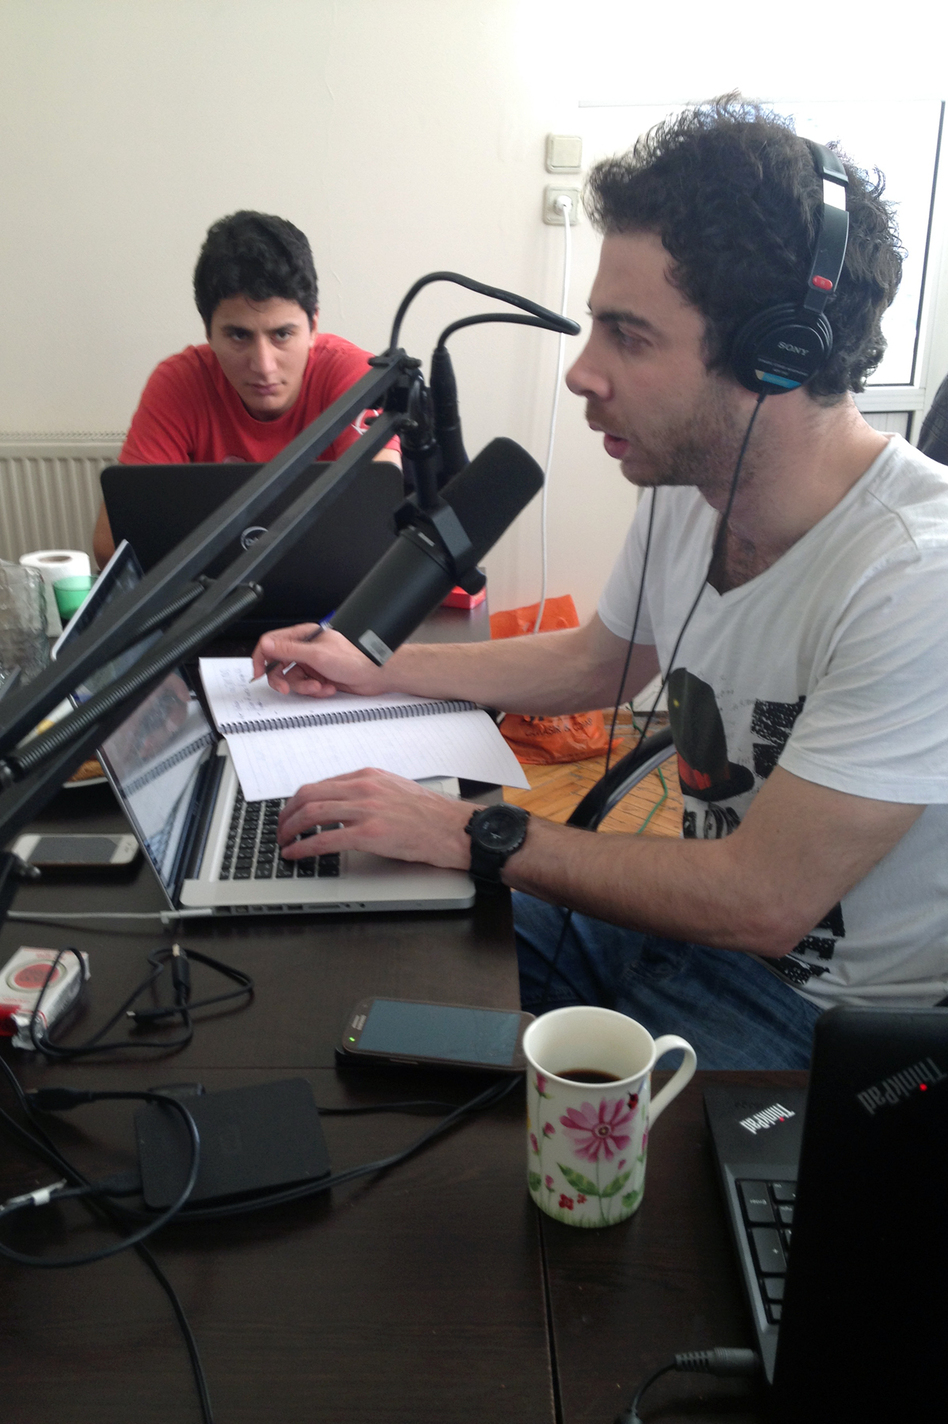 Syrian journalist Rami Jarrah (right) has set up Radio Ana across the border in southern Turkey and broadcasts into Syria. He left Raqqa after ISIS began targeting journalists and activists. (NPR)